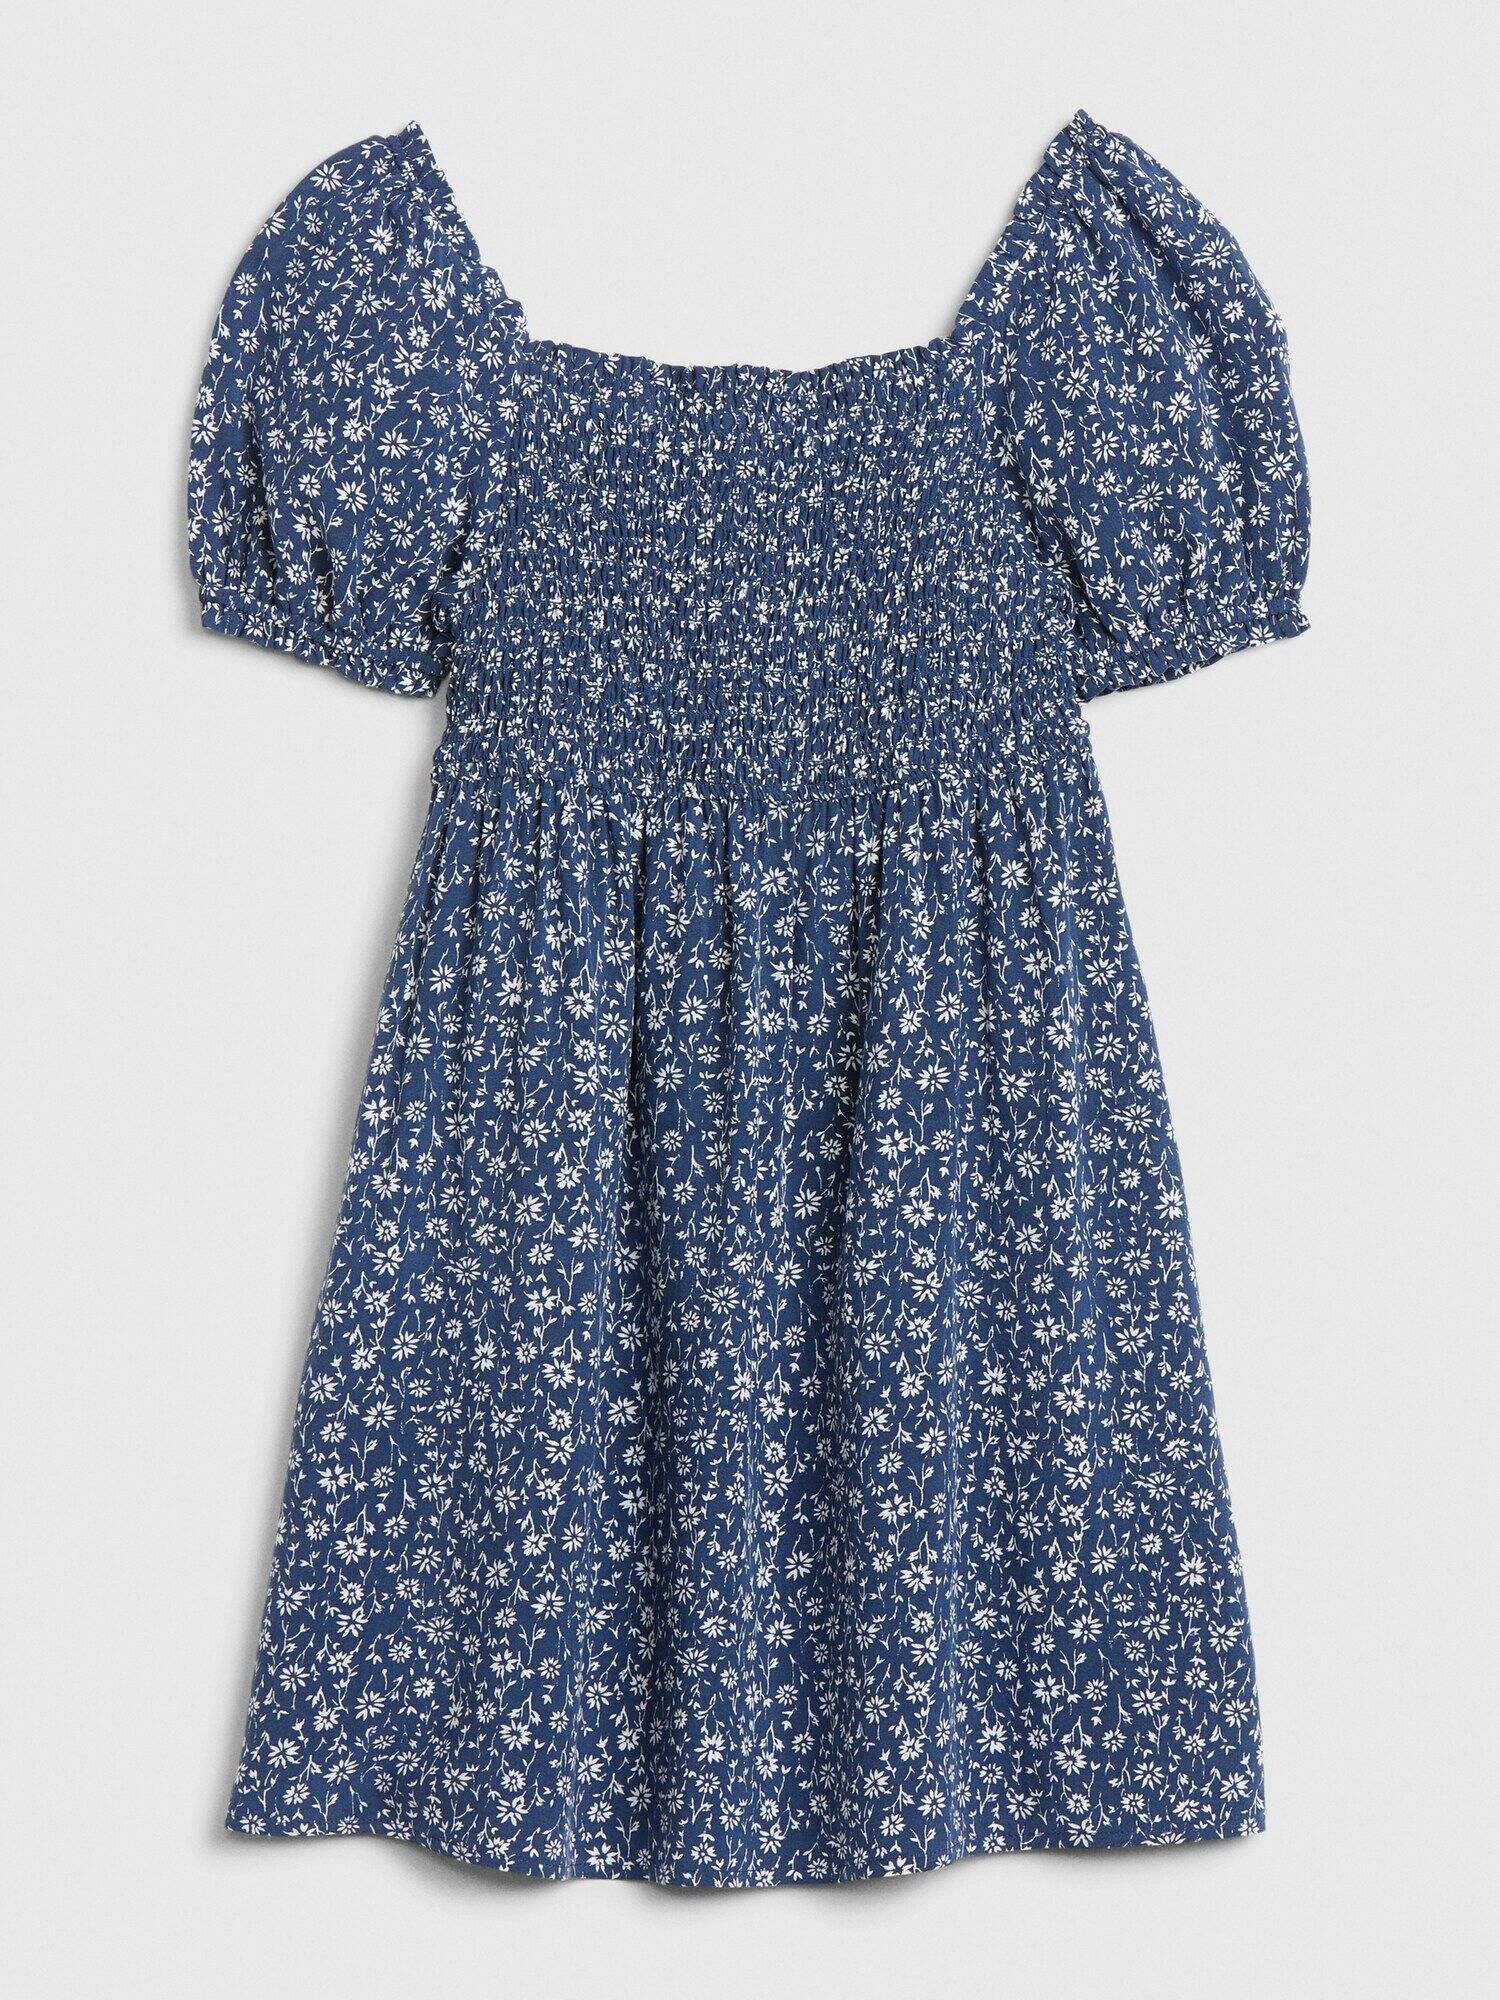 Smock Dress, £32.95 from Gap